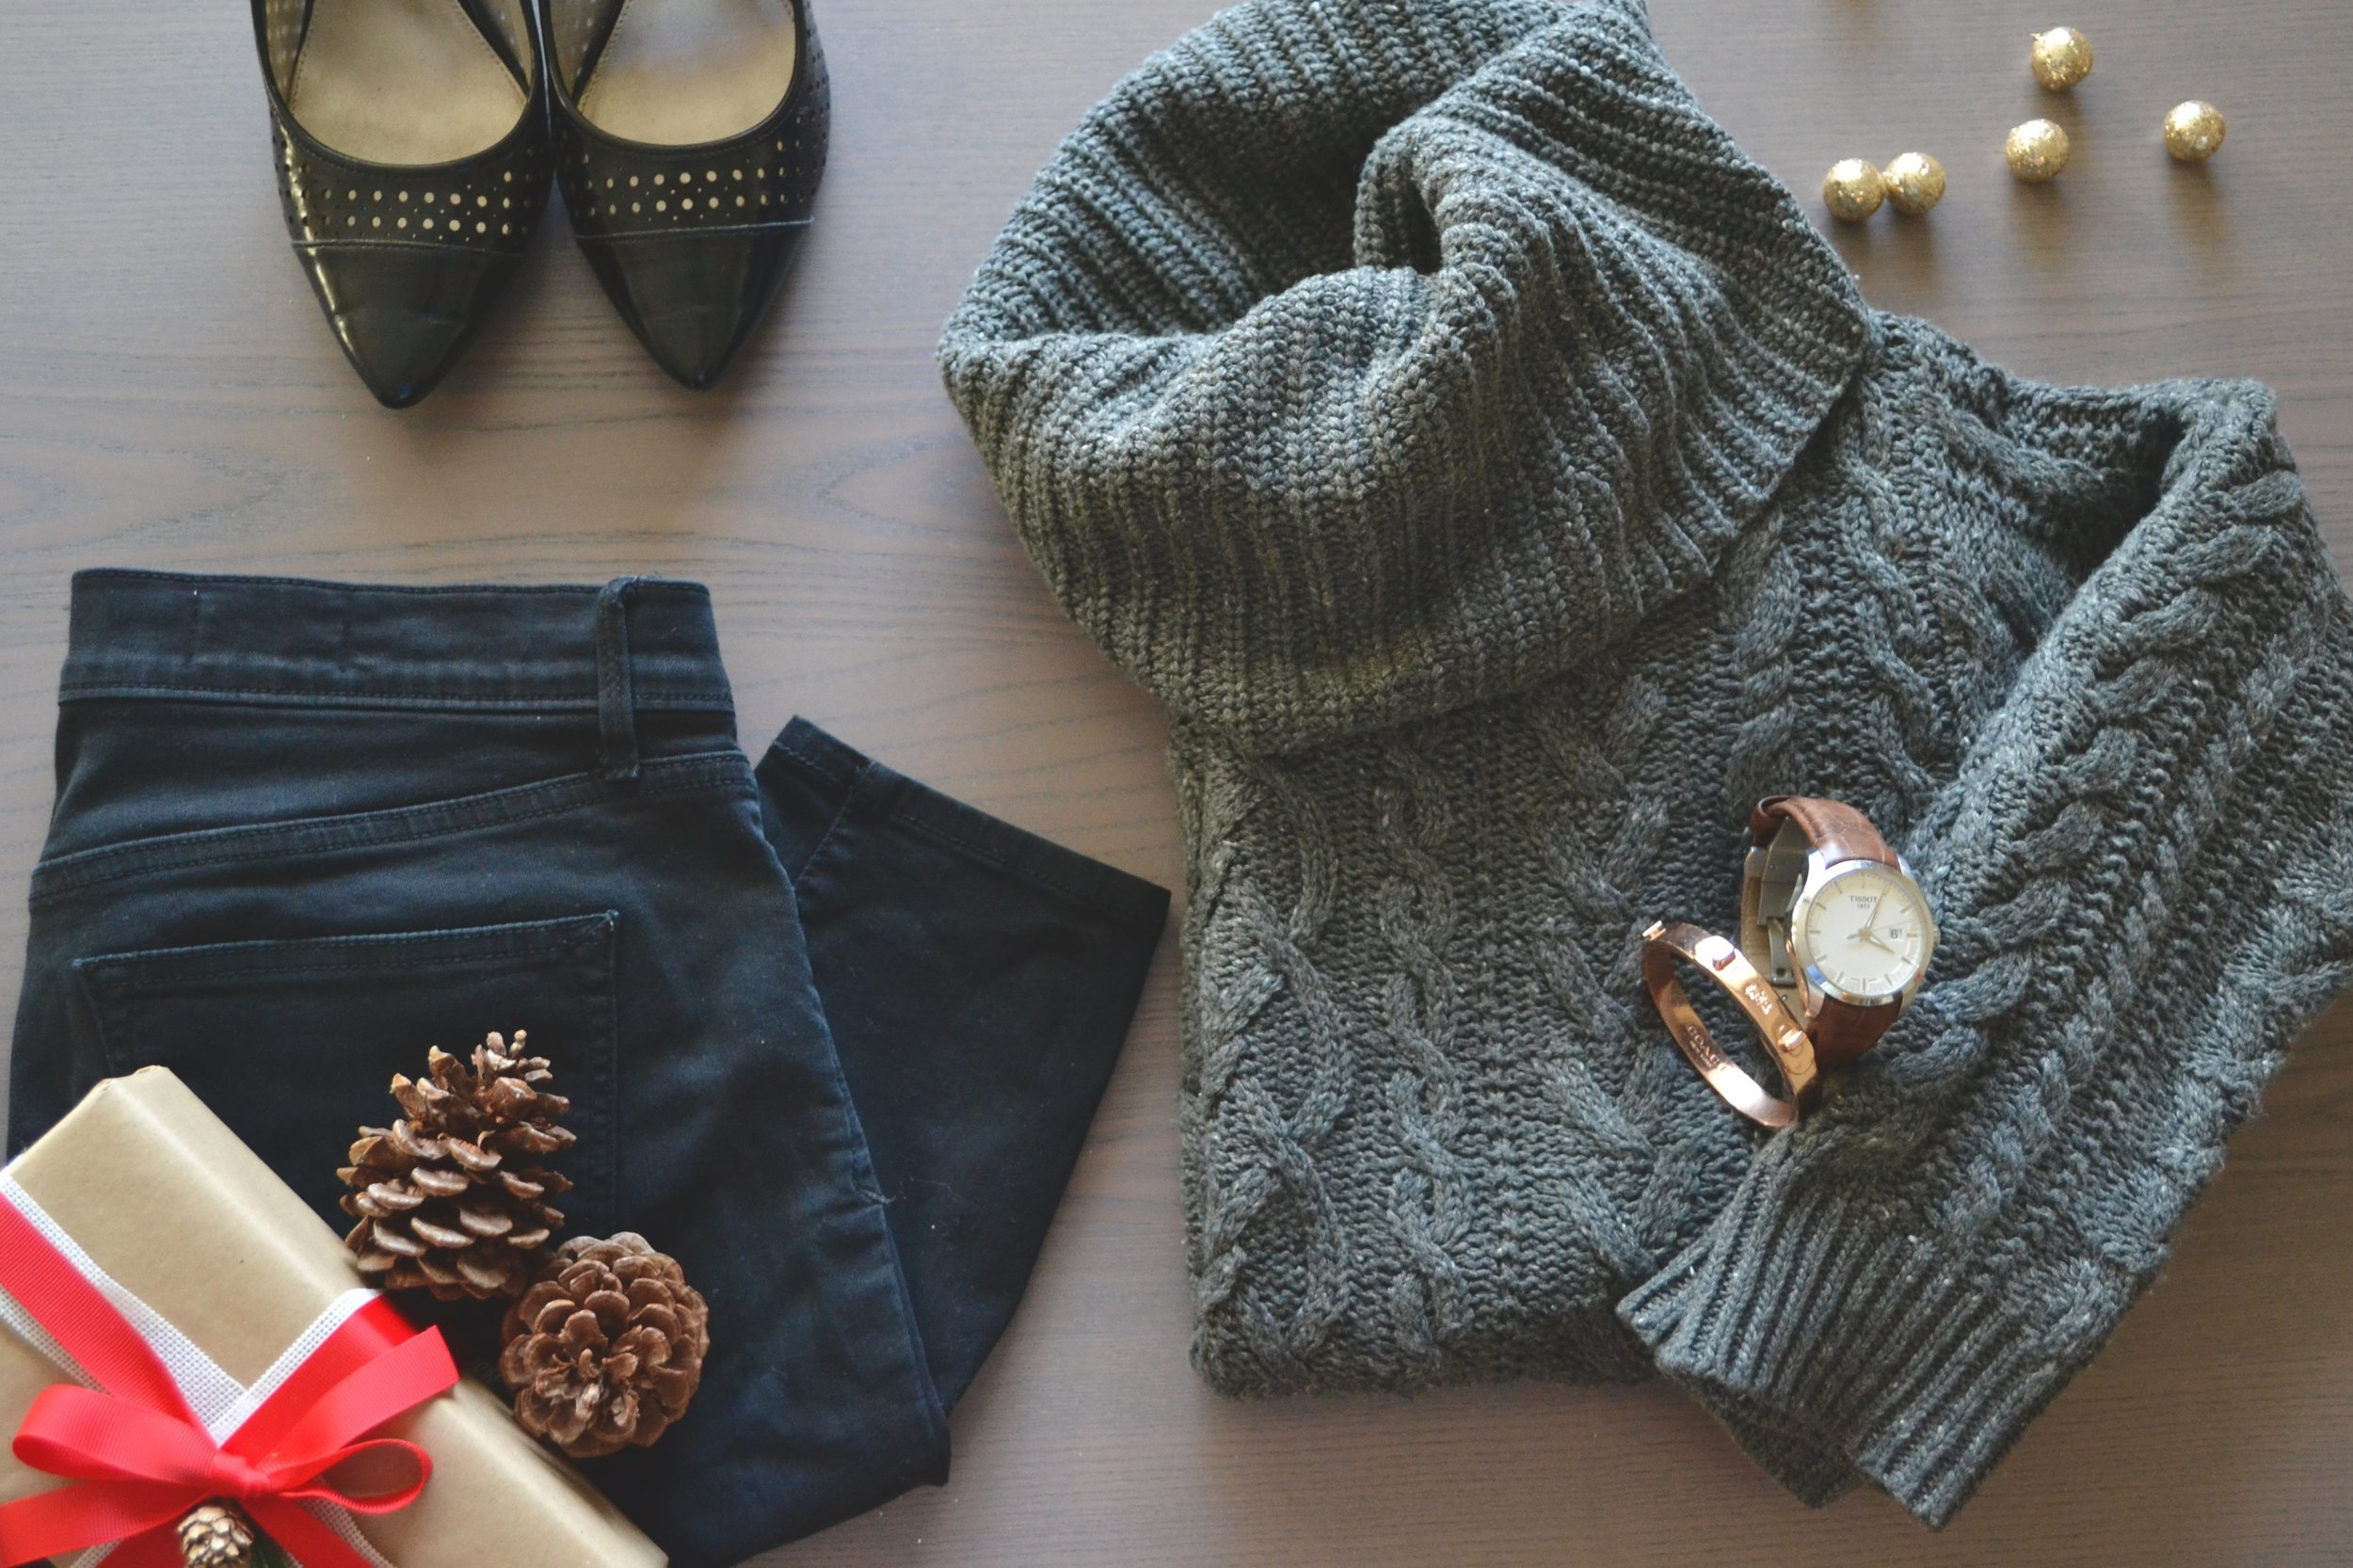 Jeans: Gap, Sweater: Tommy Hilfiger, Watch: Tissot, Bangle: Coach, Shoes: Payless Shoe